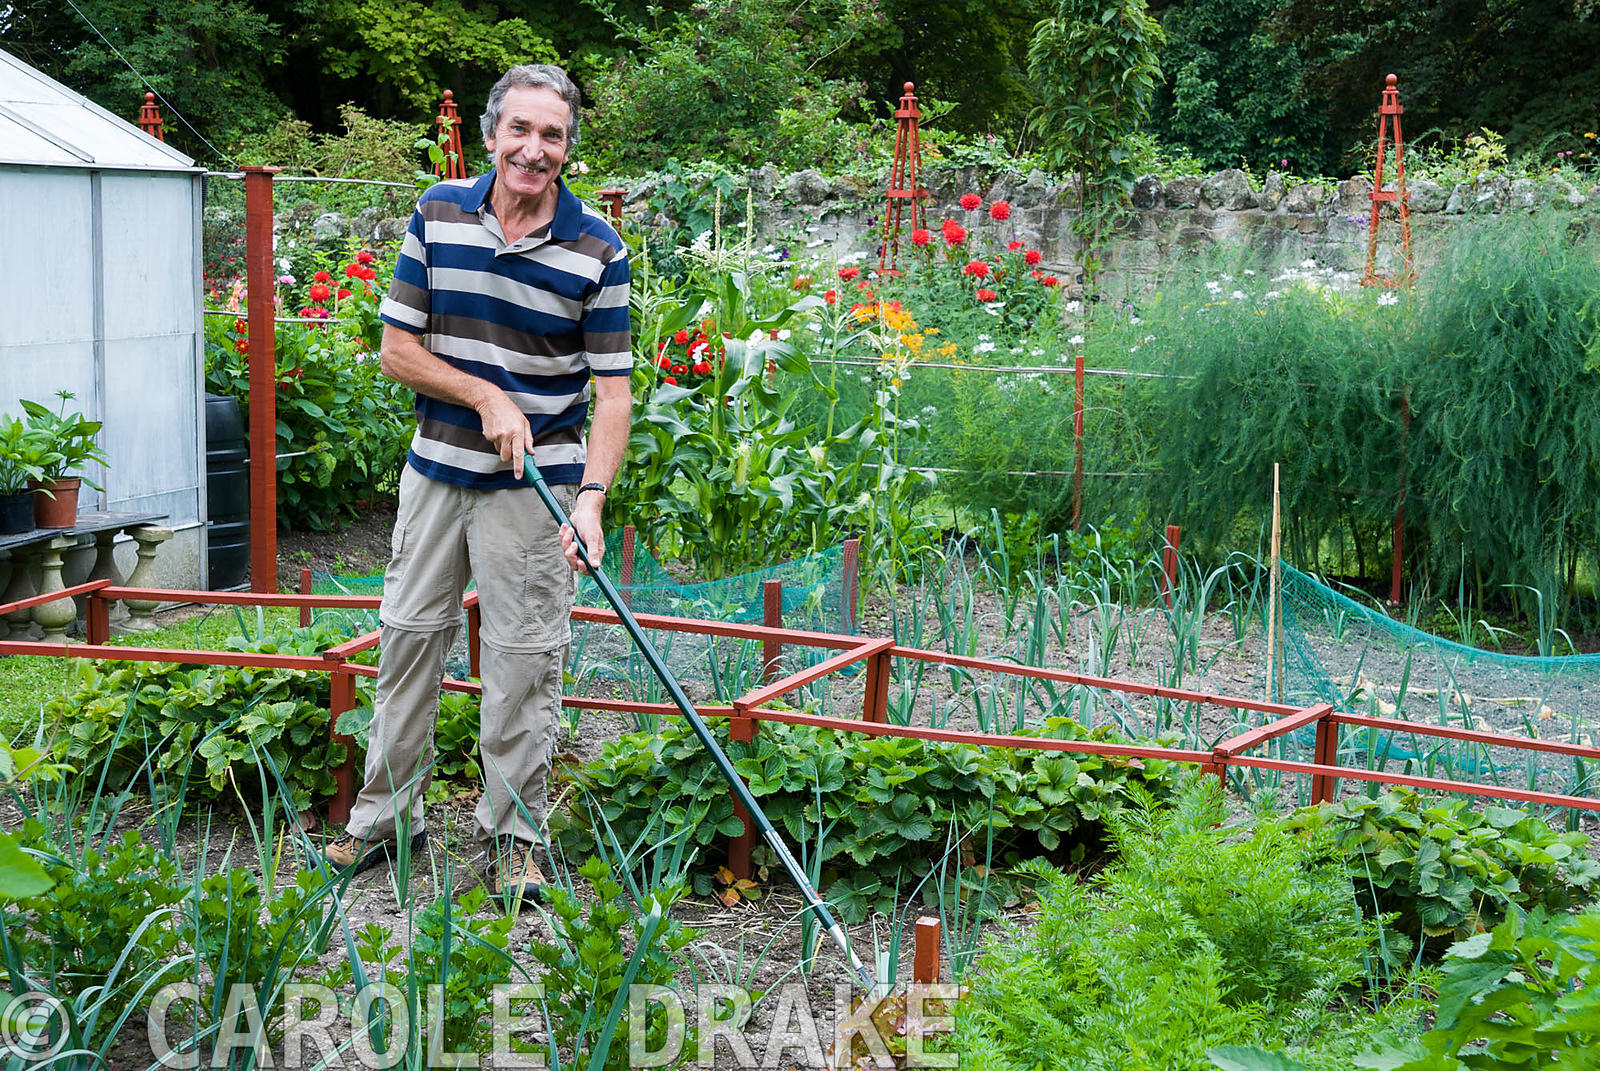 Christopher Russell hoeing in his vegetable patch. The Shute, nr Ventnor, Isle of Wight, UK